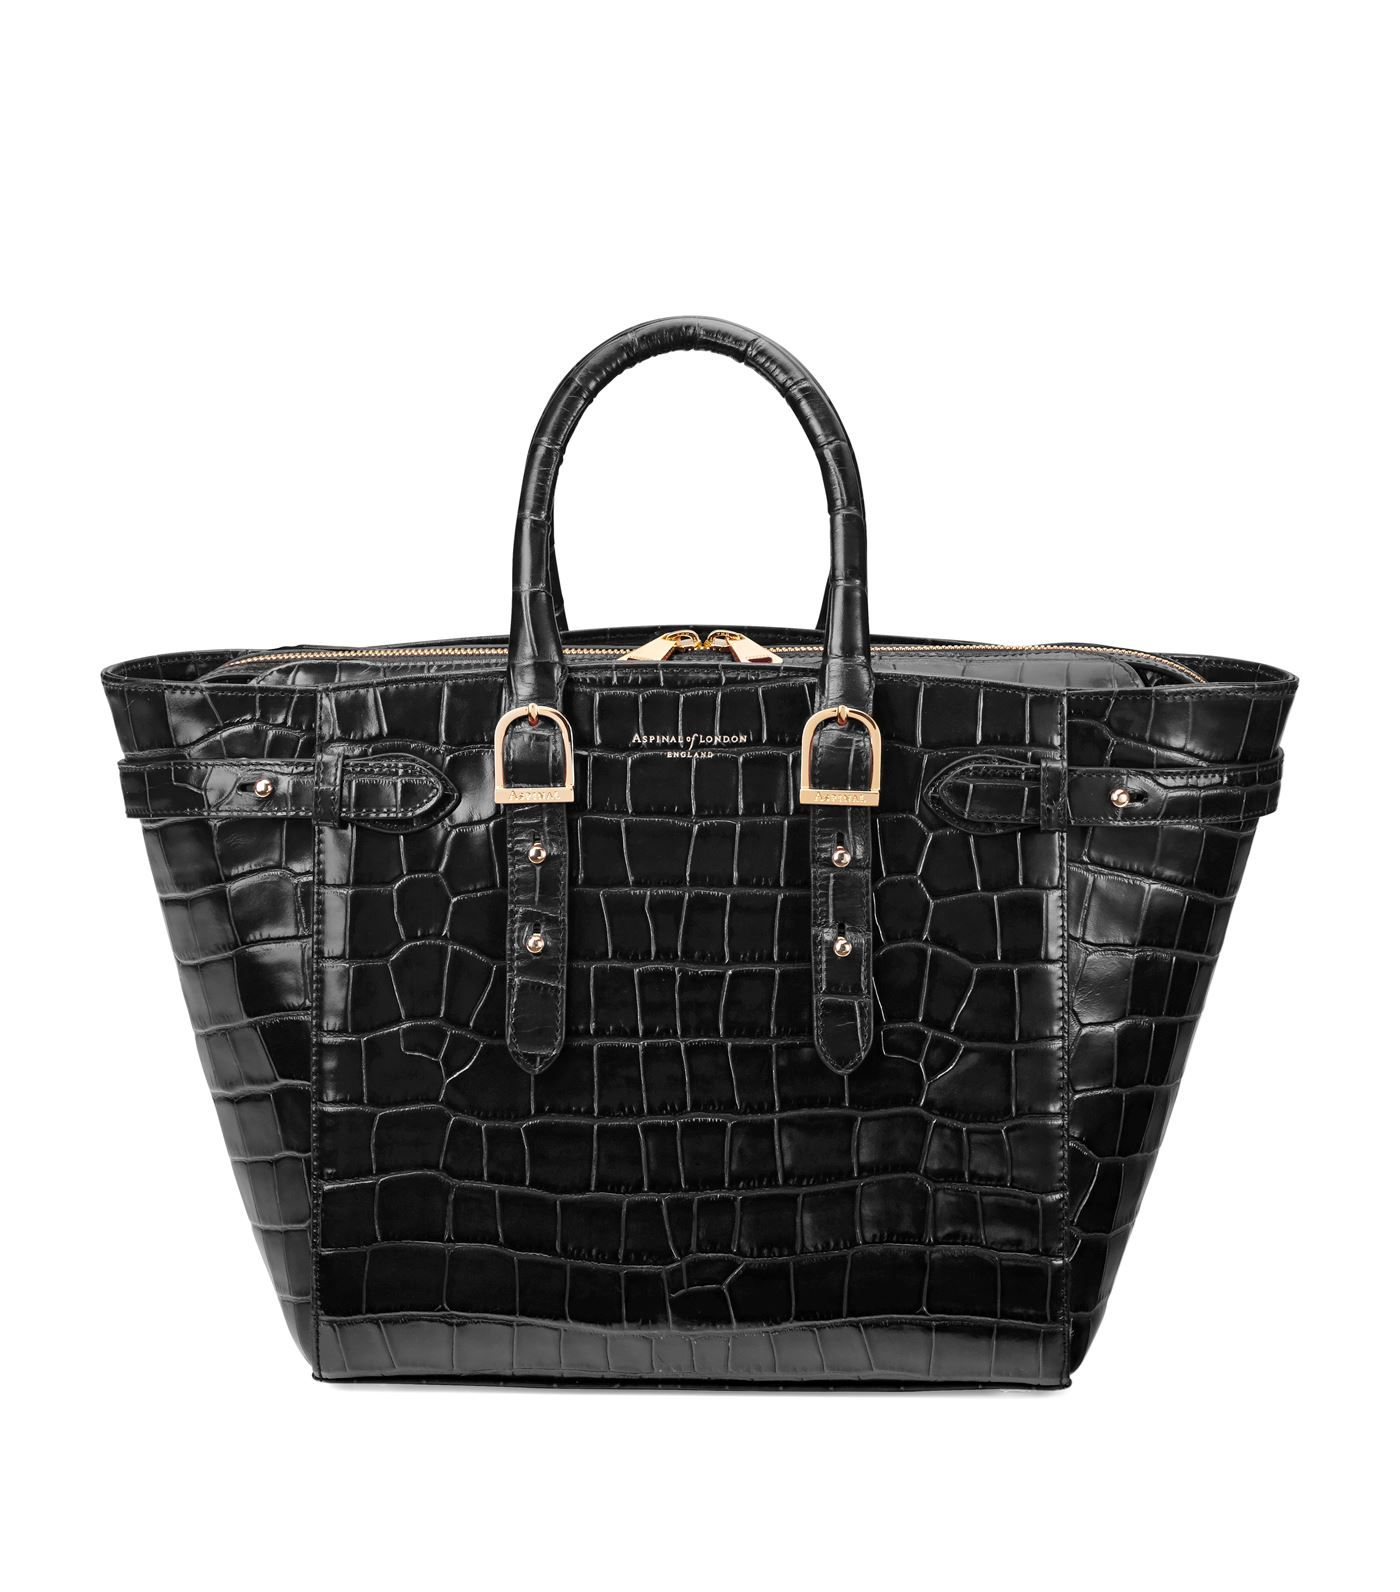 bb86e38f0231bb Aspinal of London Medium Croc-Embossed Marylebone Tote #AD , #sponsored, # Medium, #London, #Aspinal, #Croc, #Tote